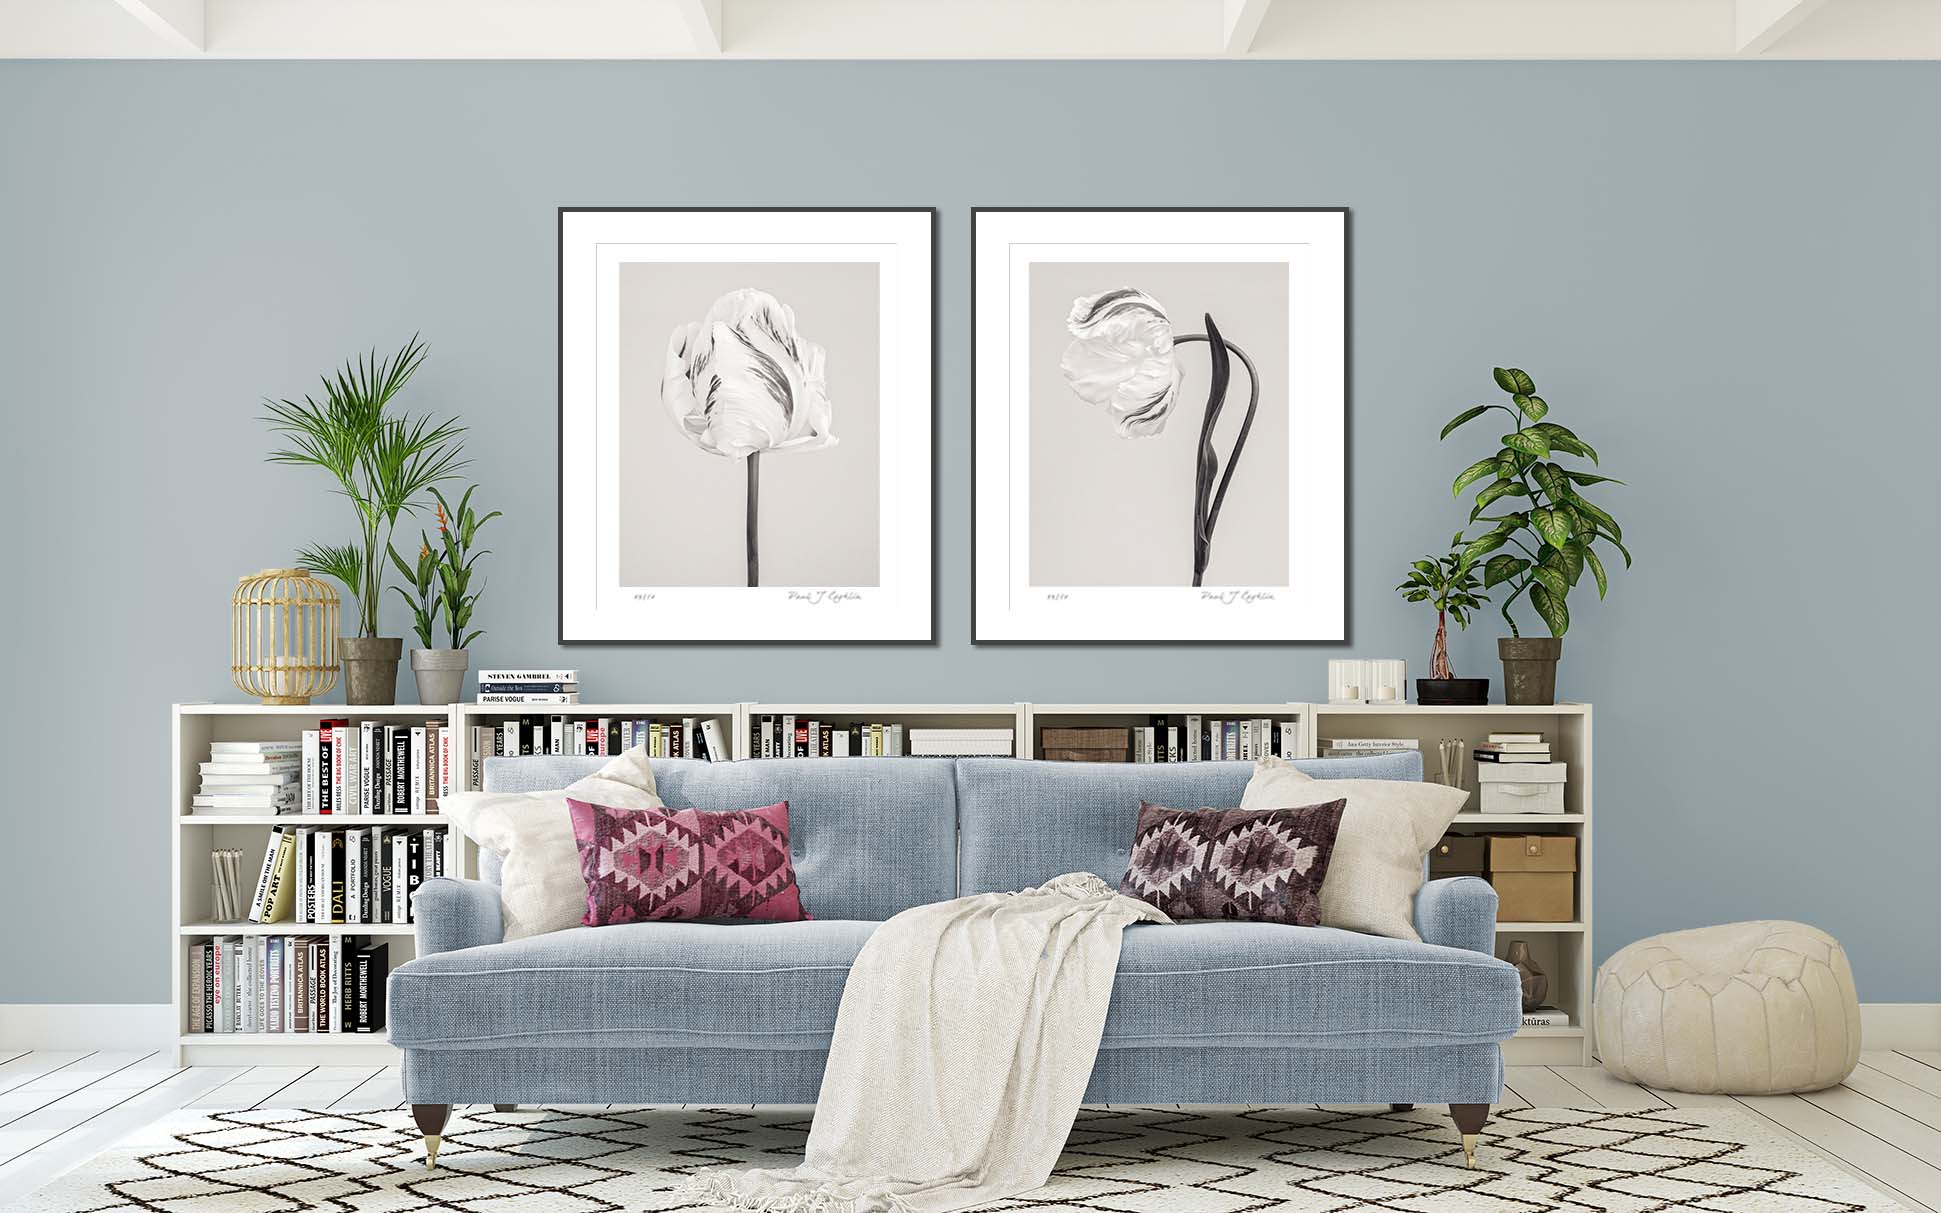 Tulip Madonna I & II. Limited edition photographic prints of tulips by fine art photographer Paul Coghlin. Image shows monochrome botanical studies of tulips.